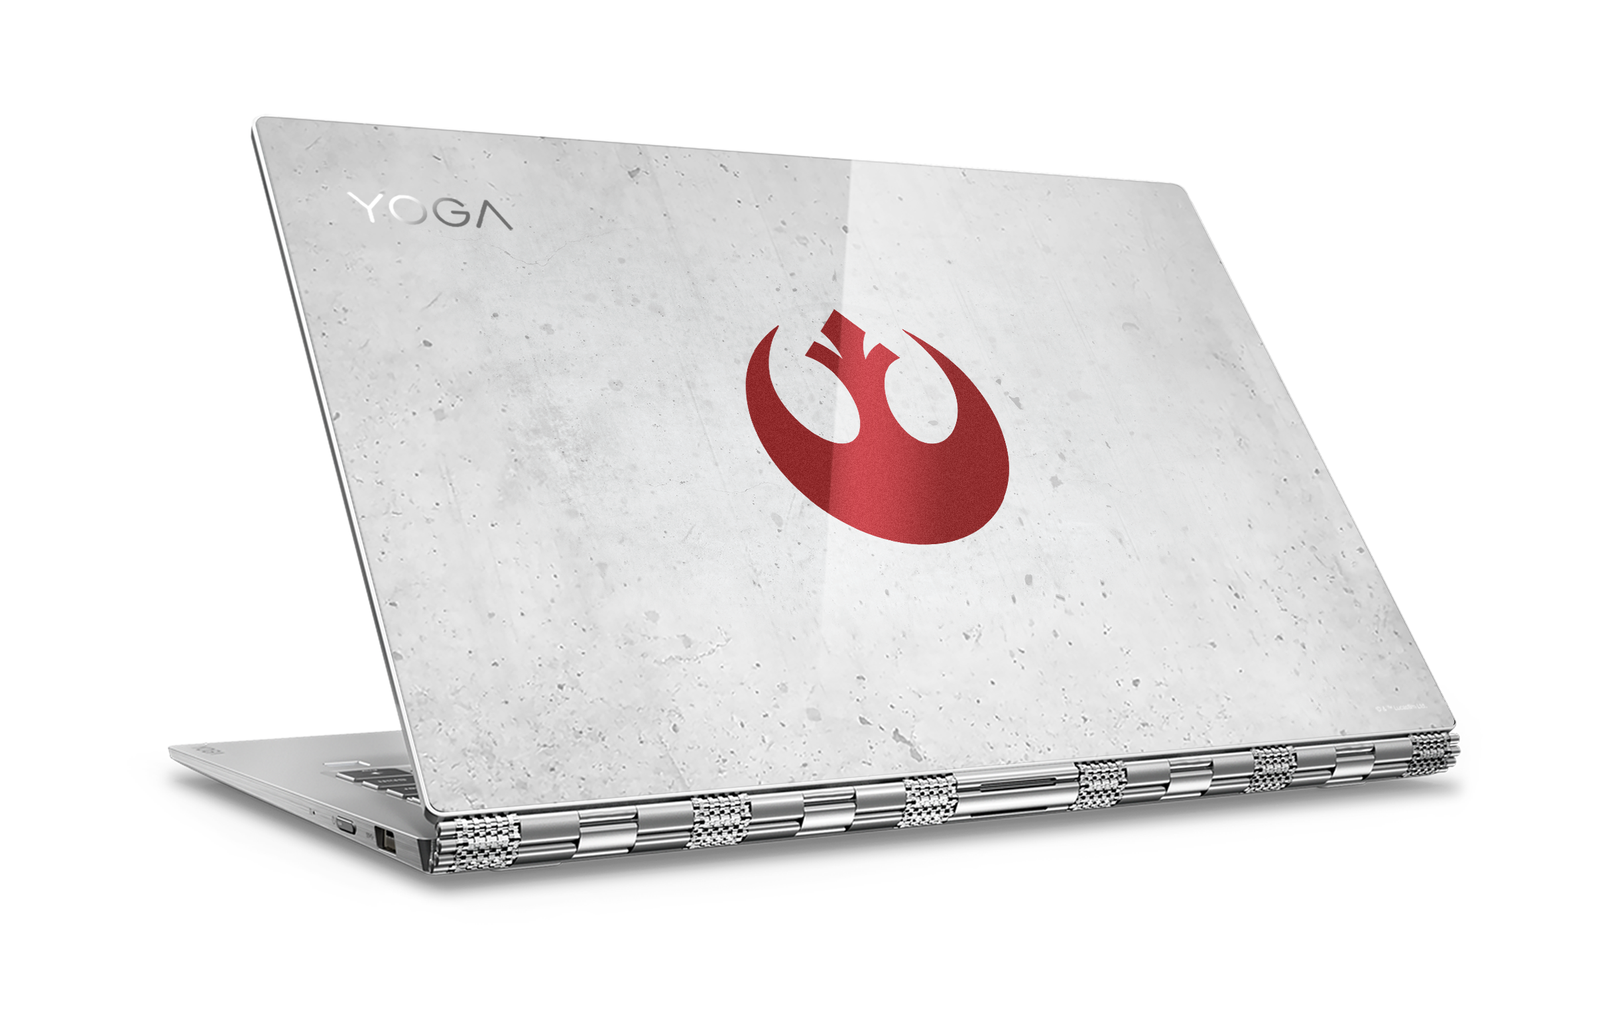 1504707573_1504697125starwarsspecialeditionyoga920rebelalliance002.png